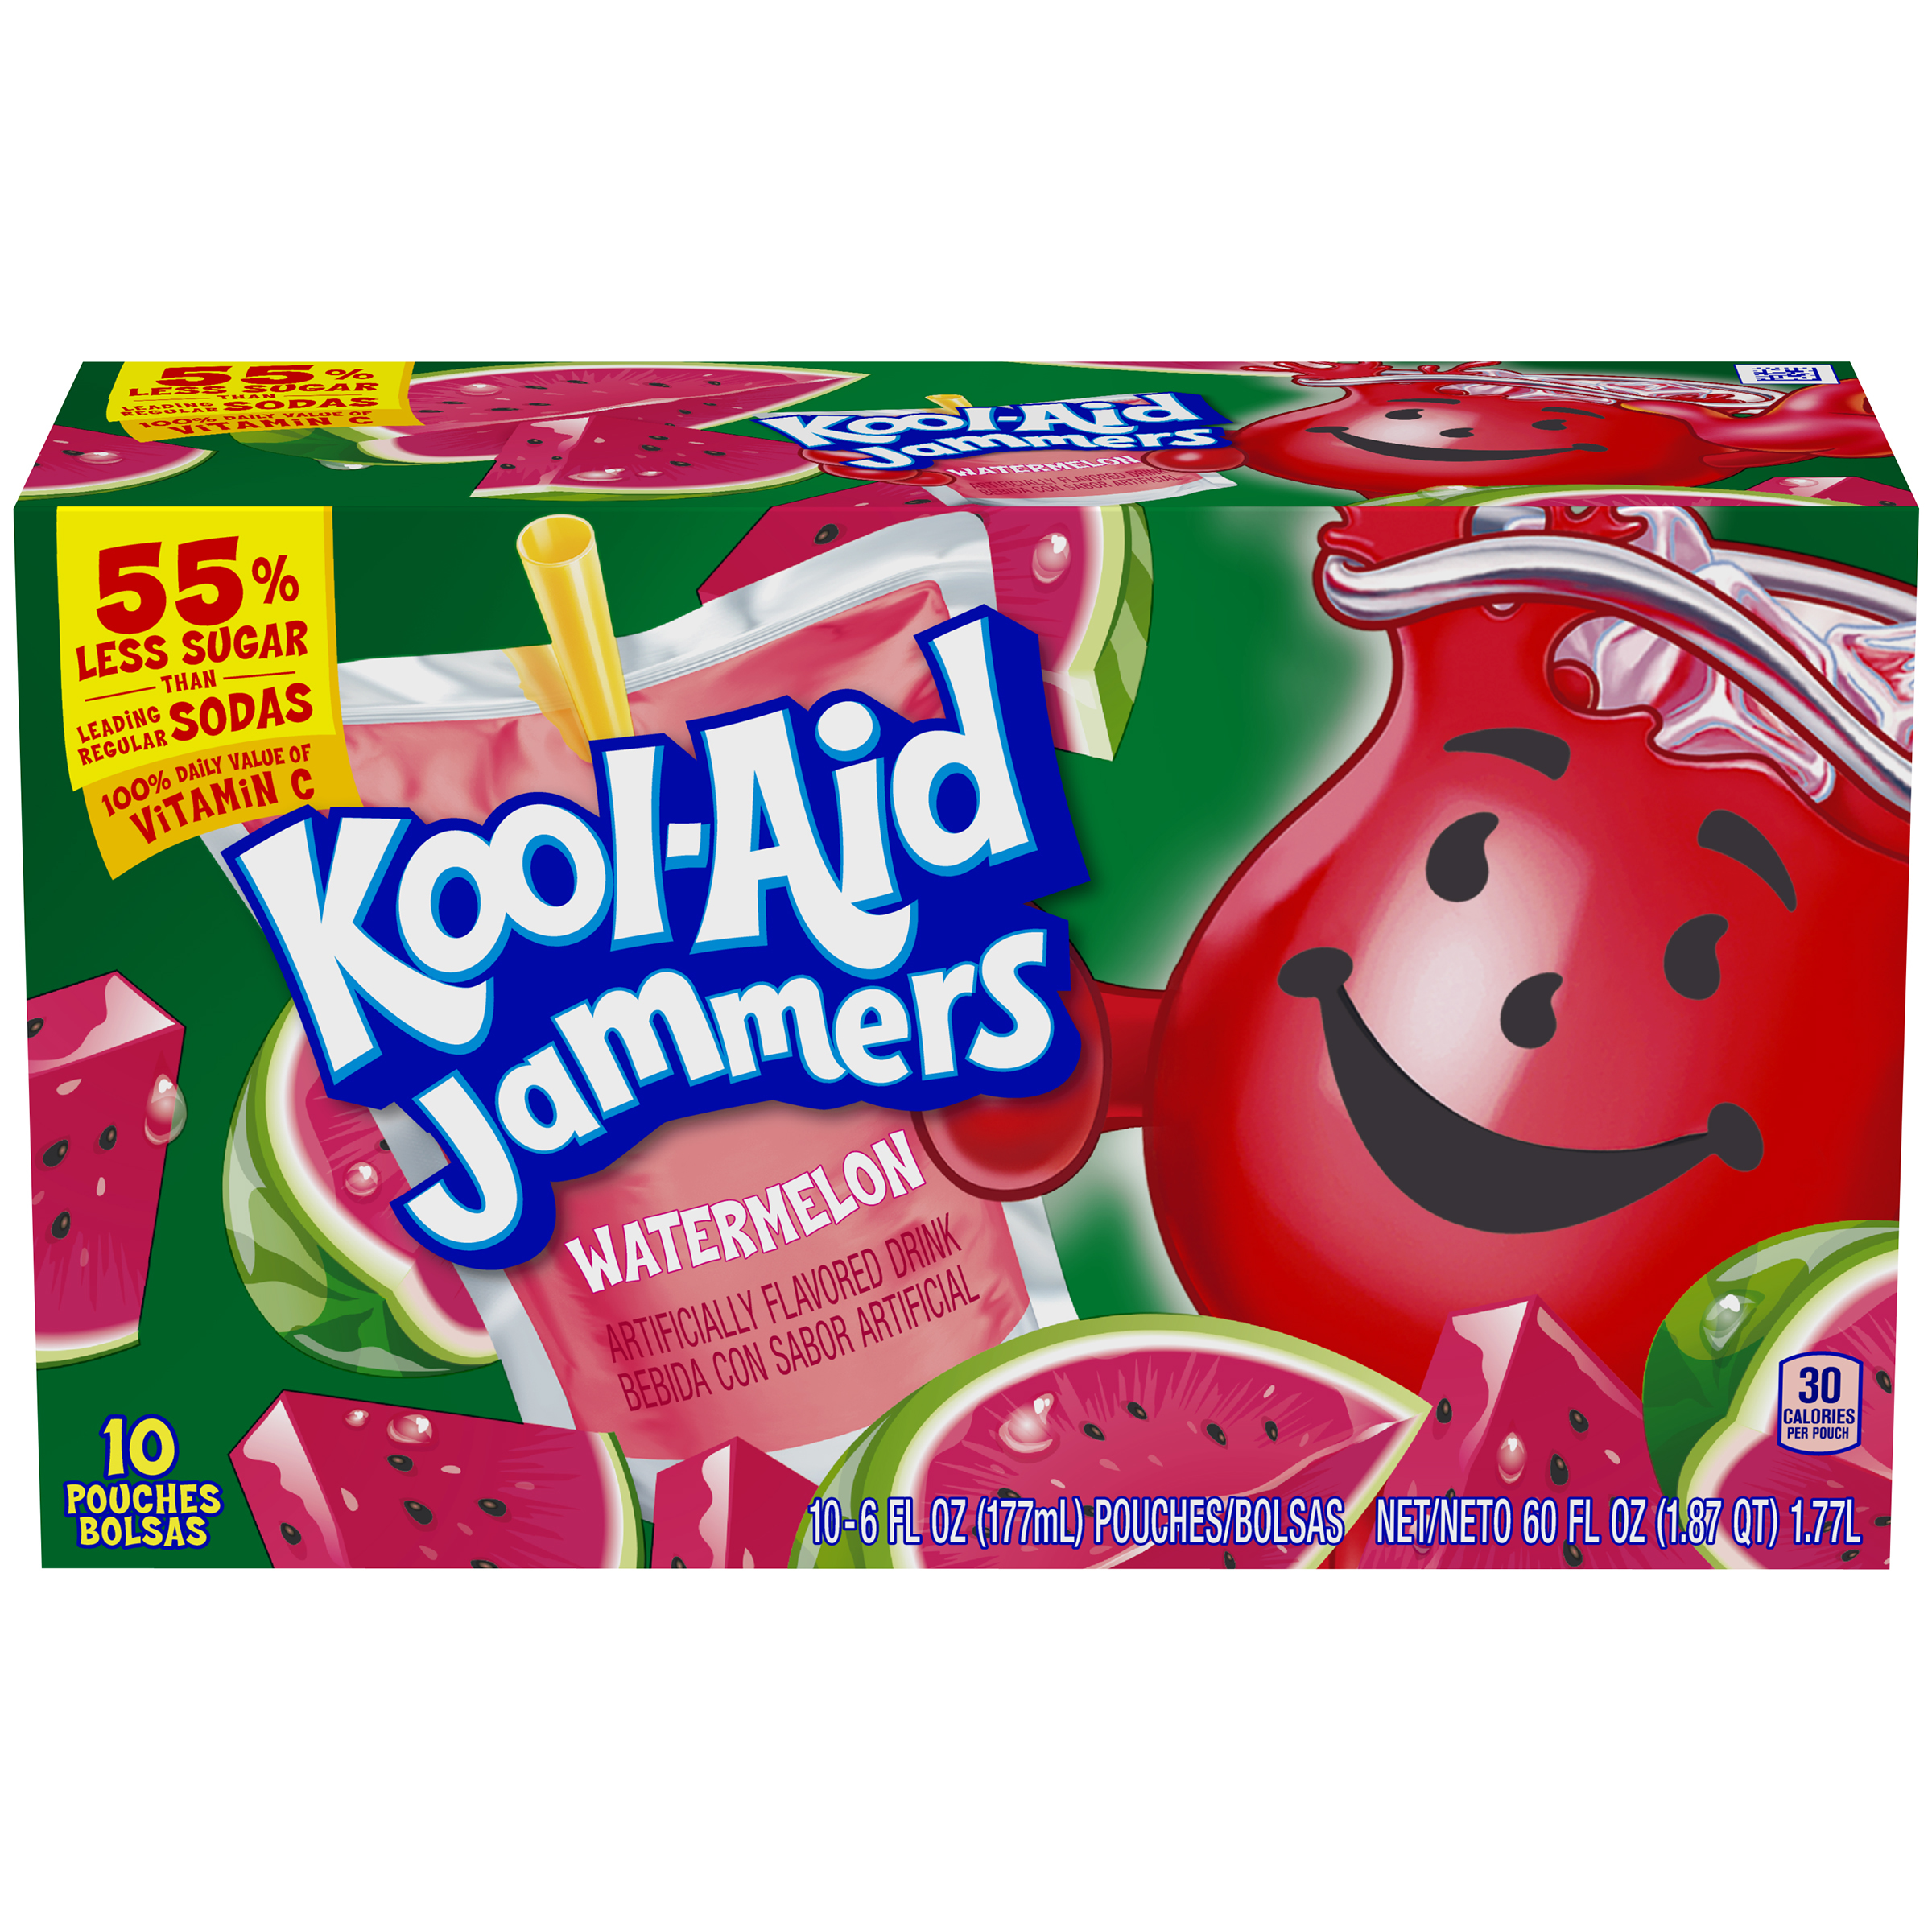 Kool-Aid Jammers Watermelon Ready-to-Drink Soft Drink